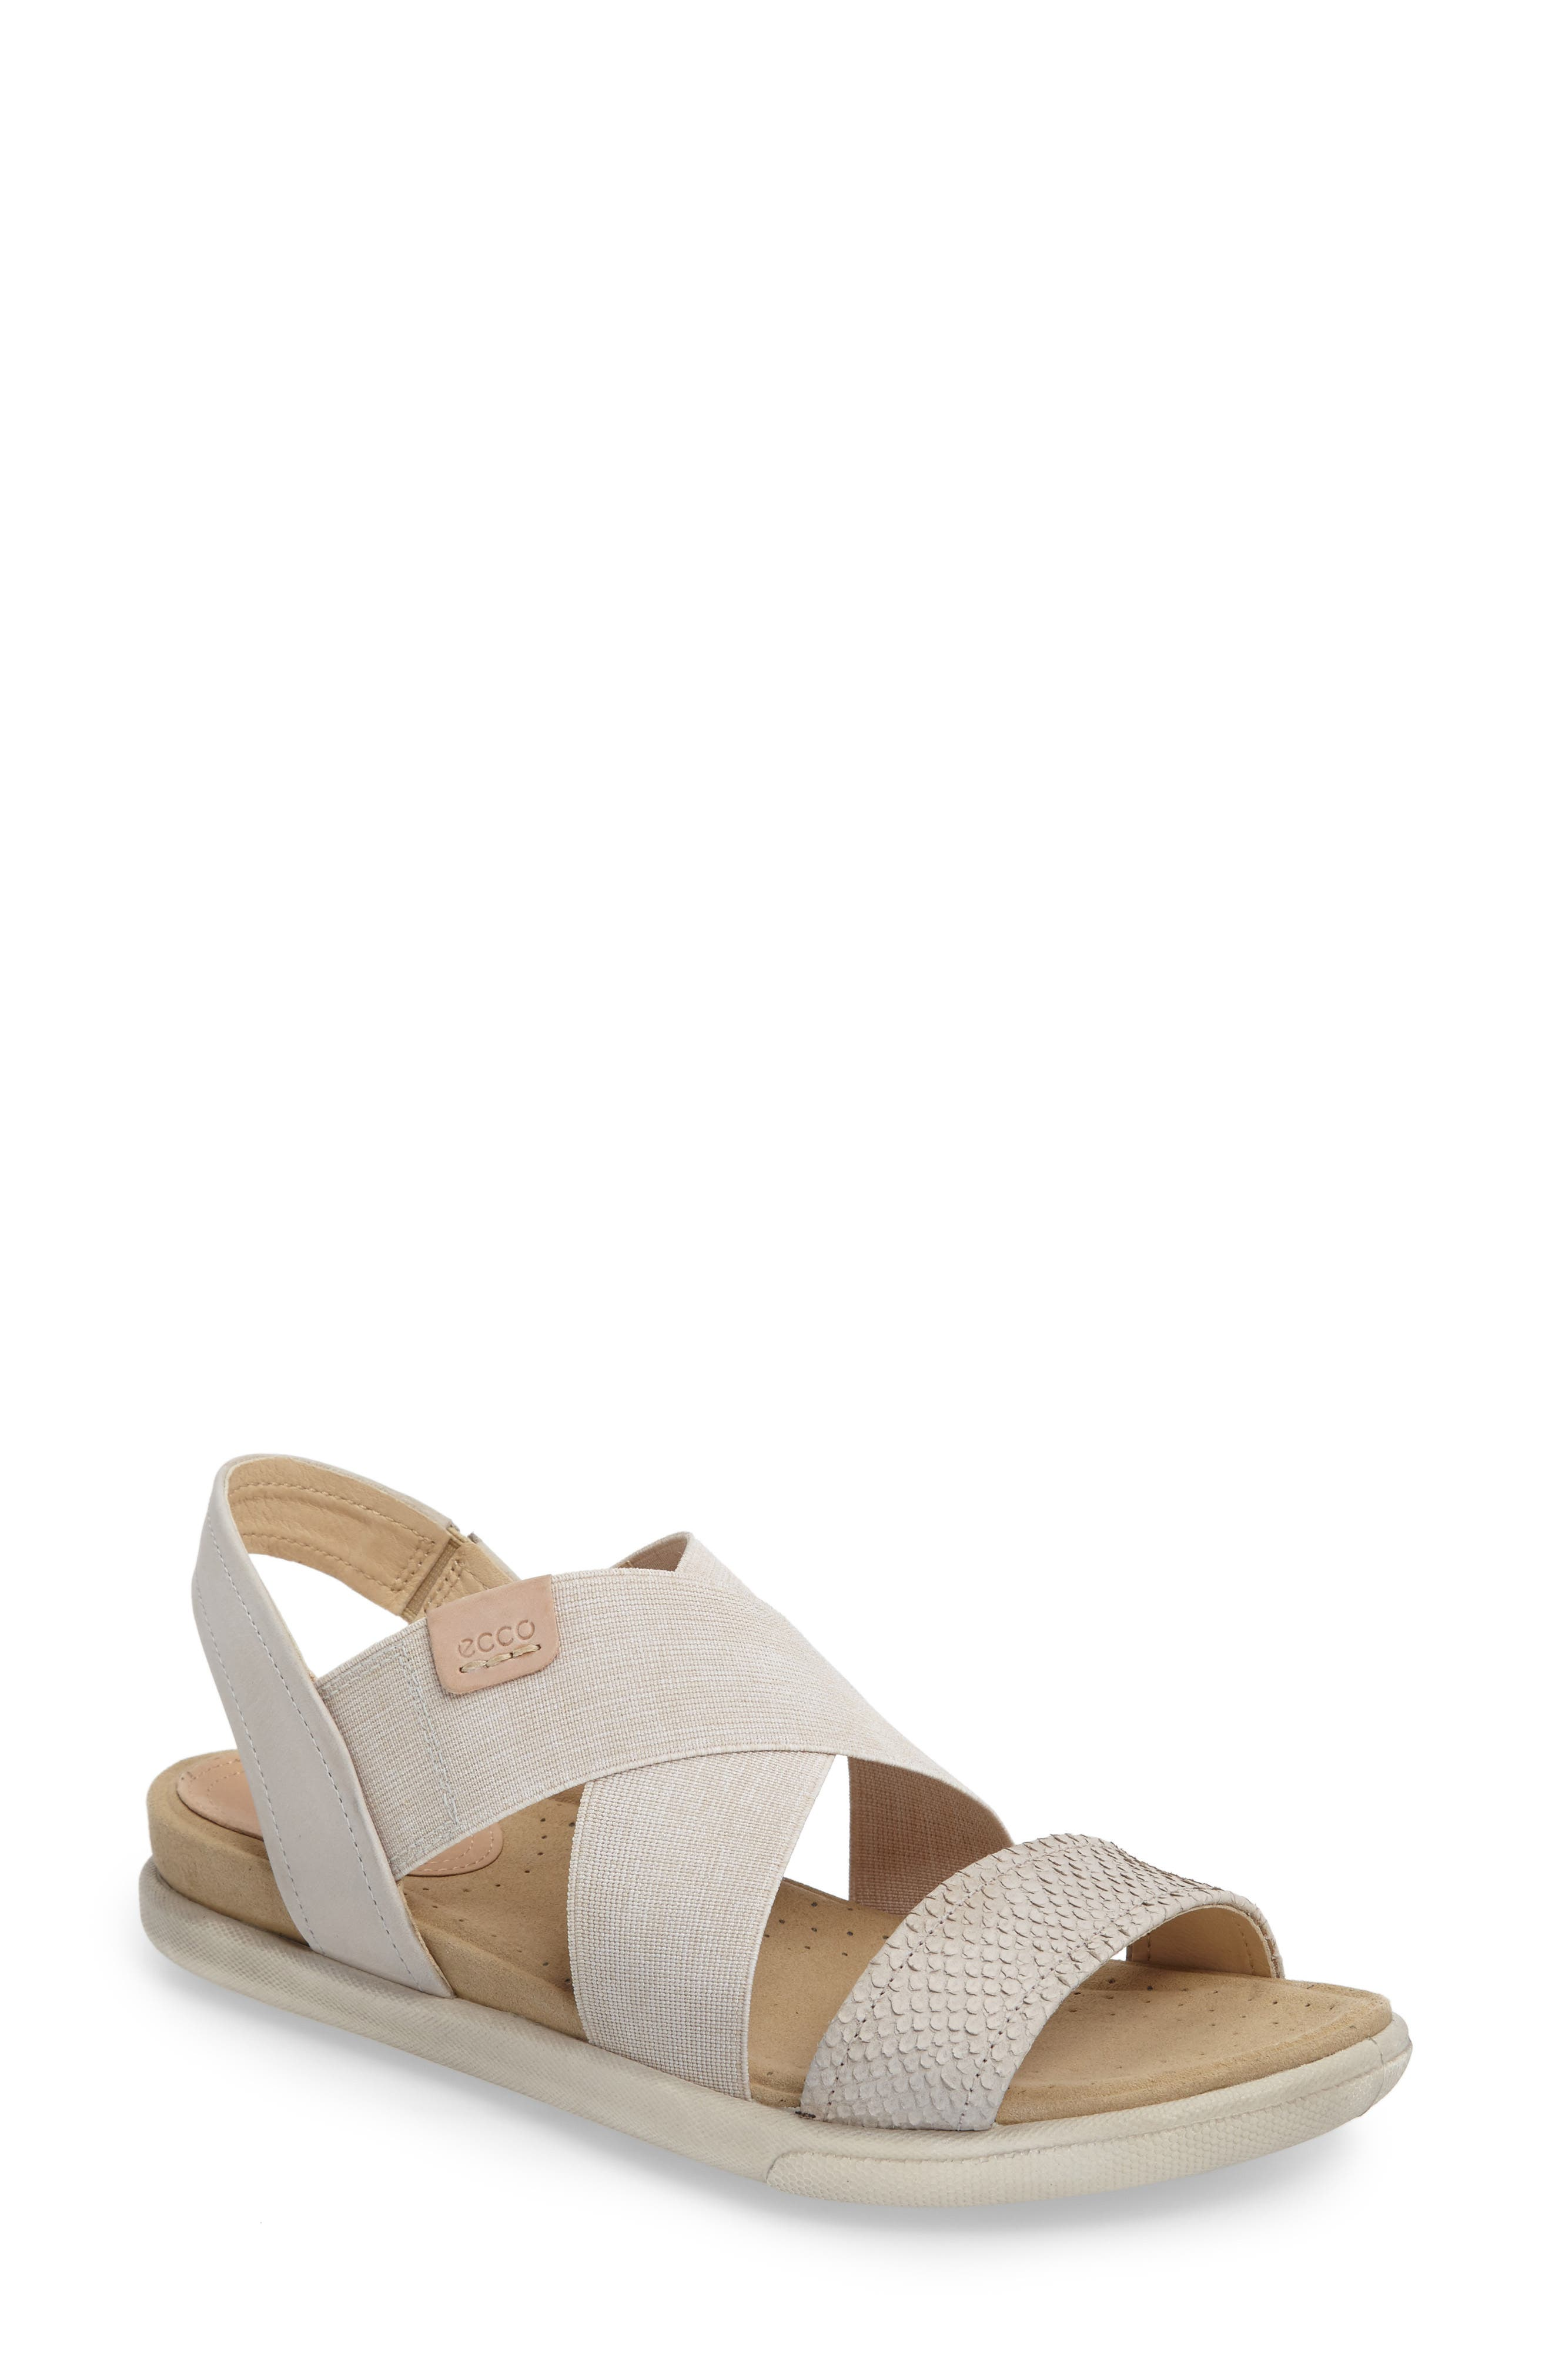 Main Image - ECCO Damara Cross-Strap Sandal (Women)